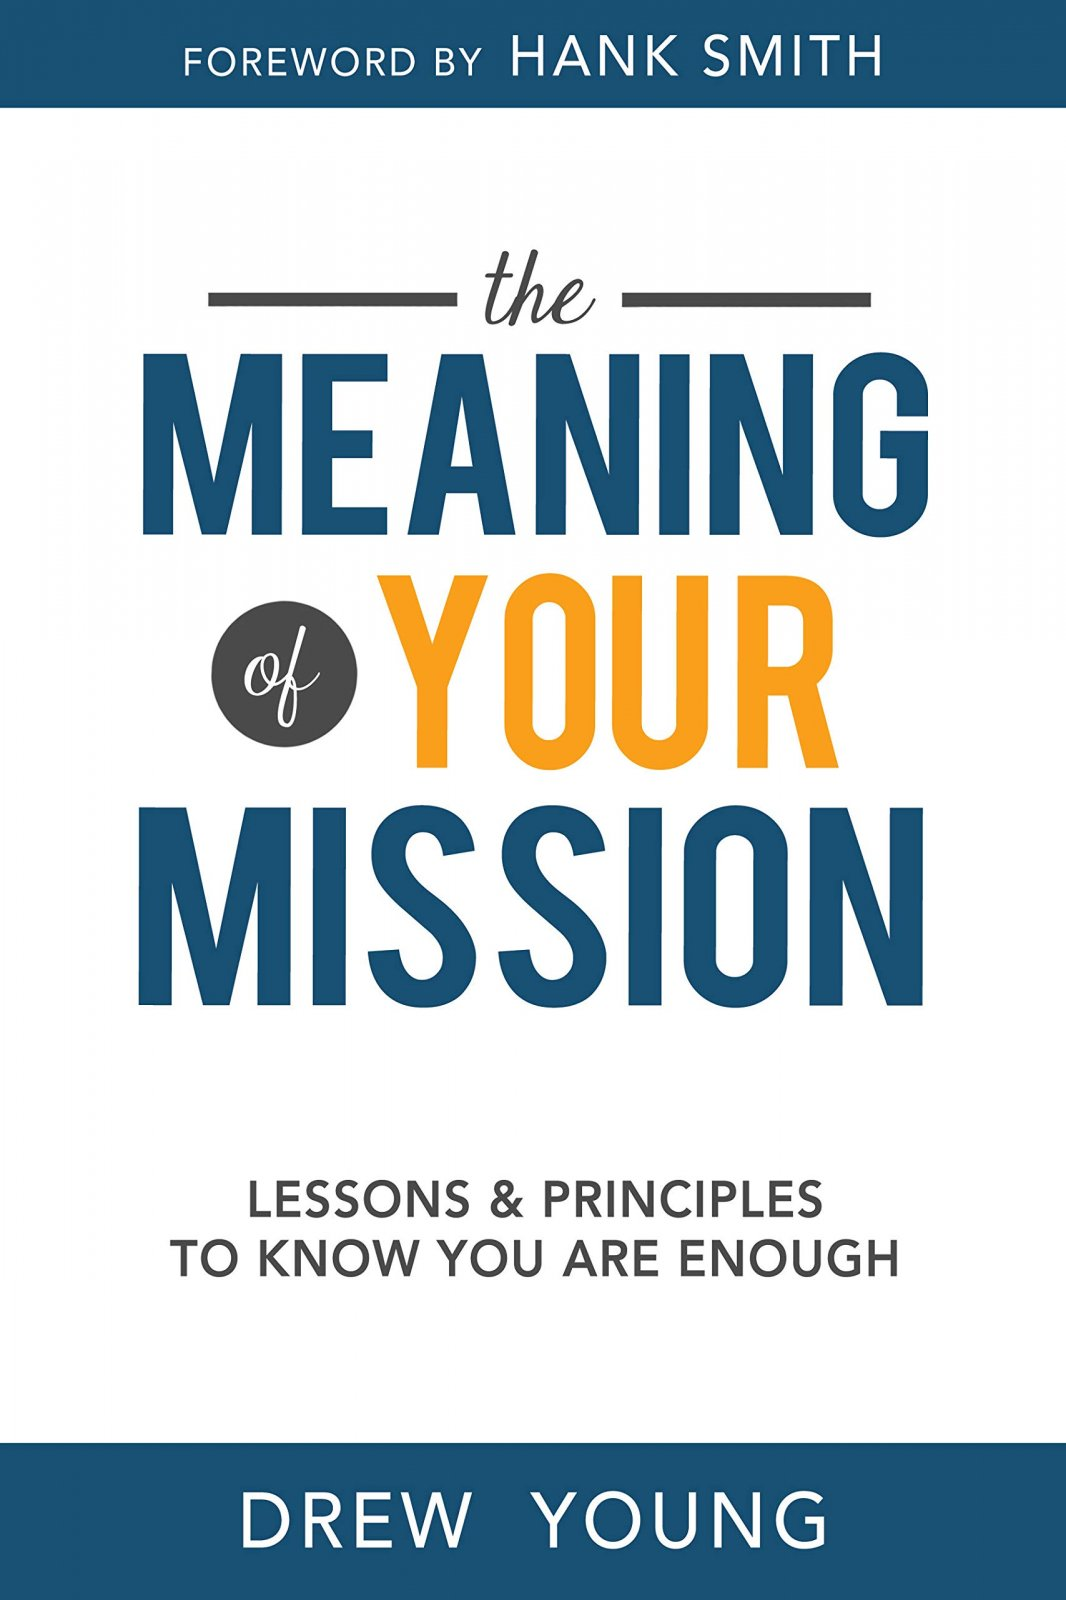 The Meaning of Your Mission